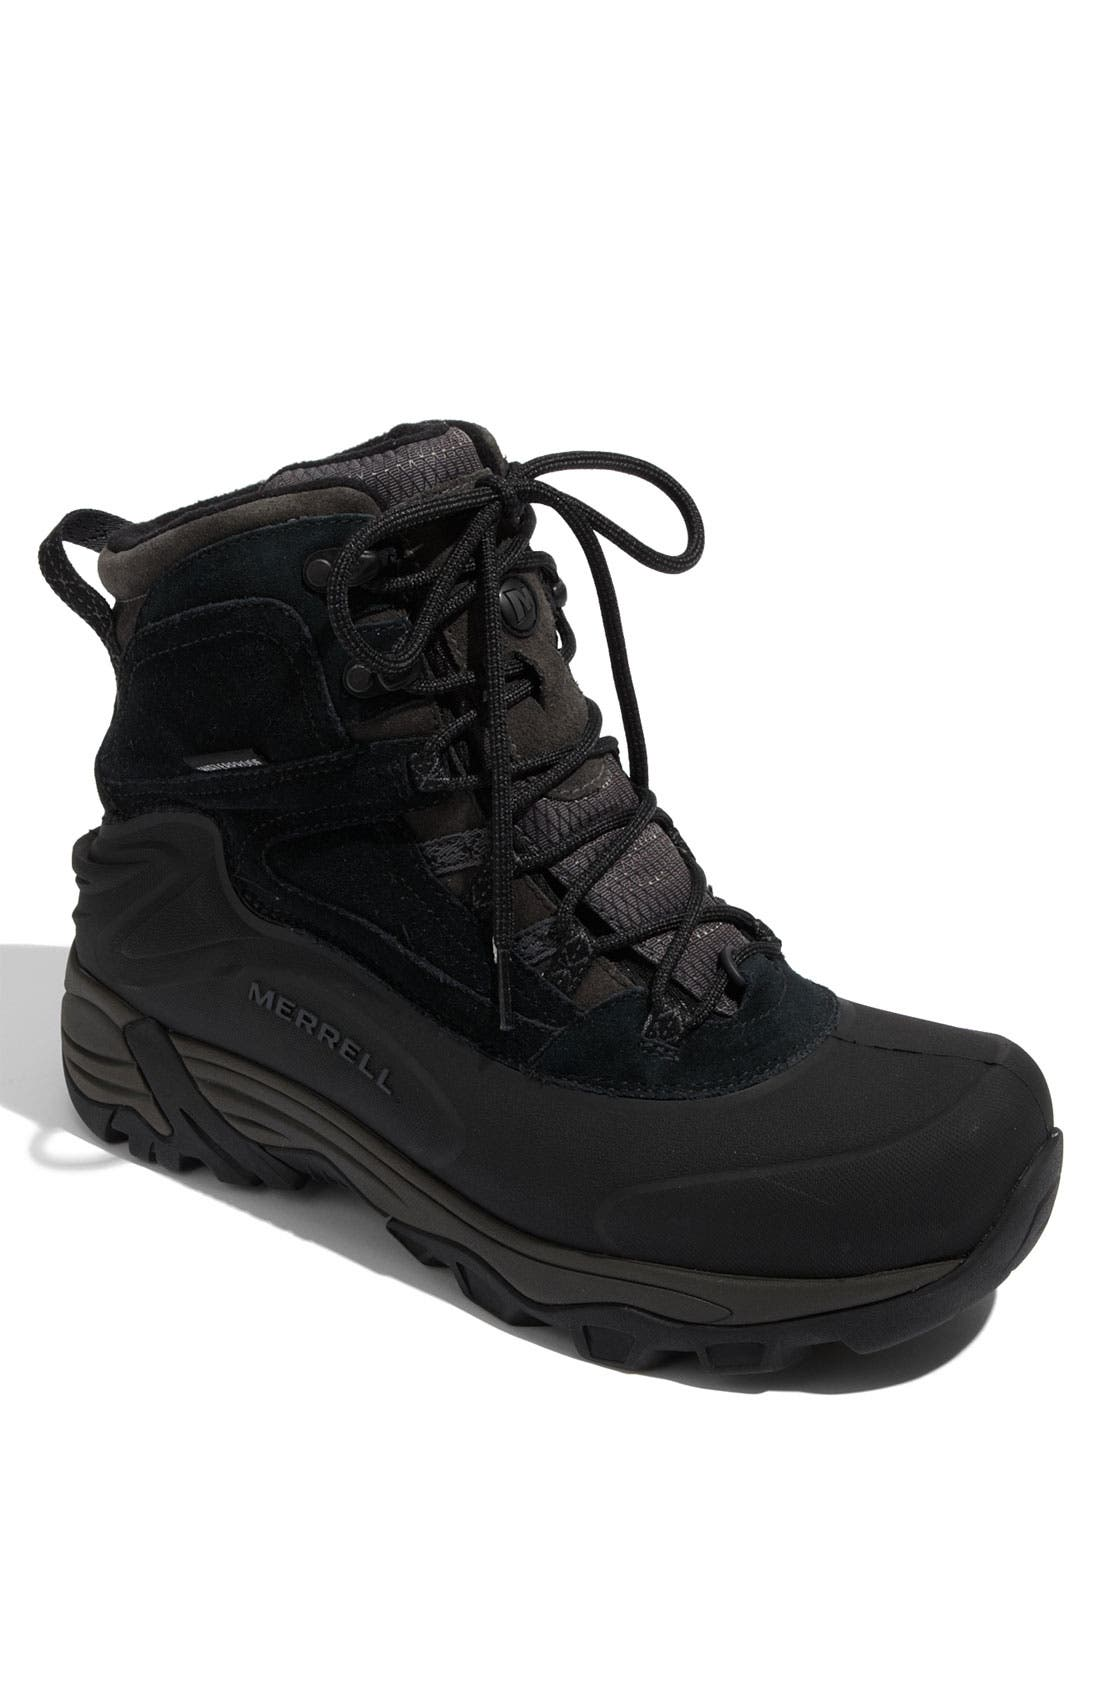 Alternate Image 1 Selected - Merrell 'Ice Jam' Waterproof Boot (Online Only)